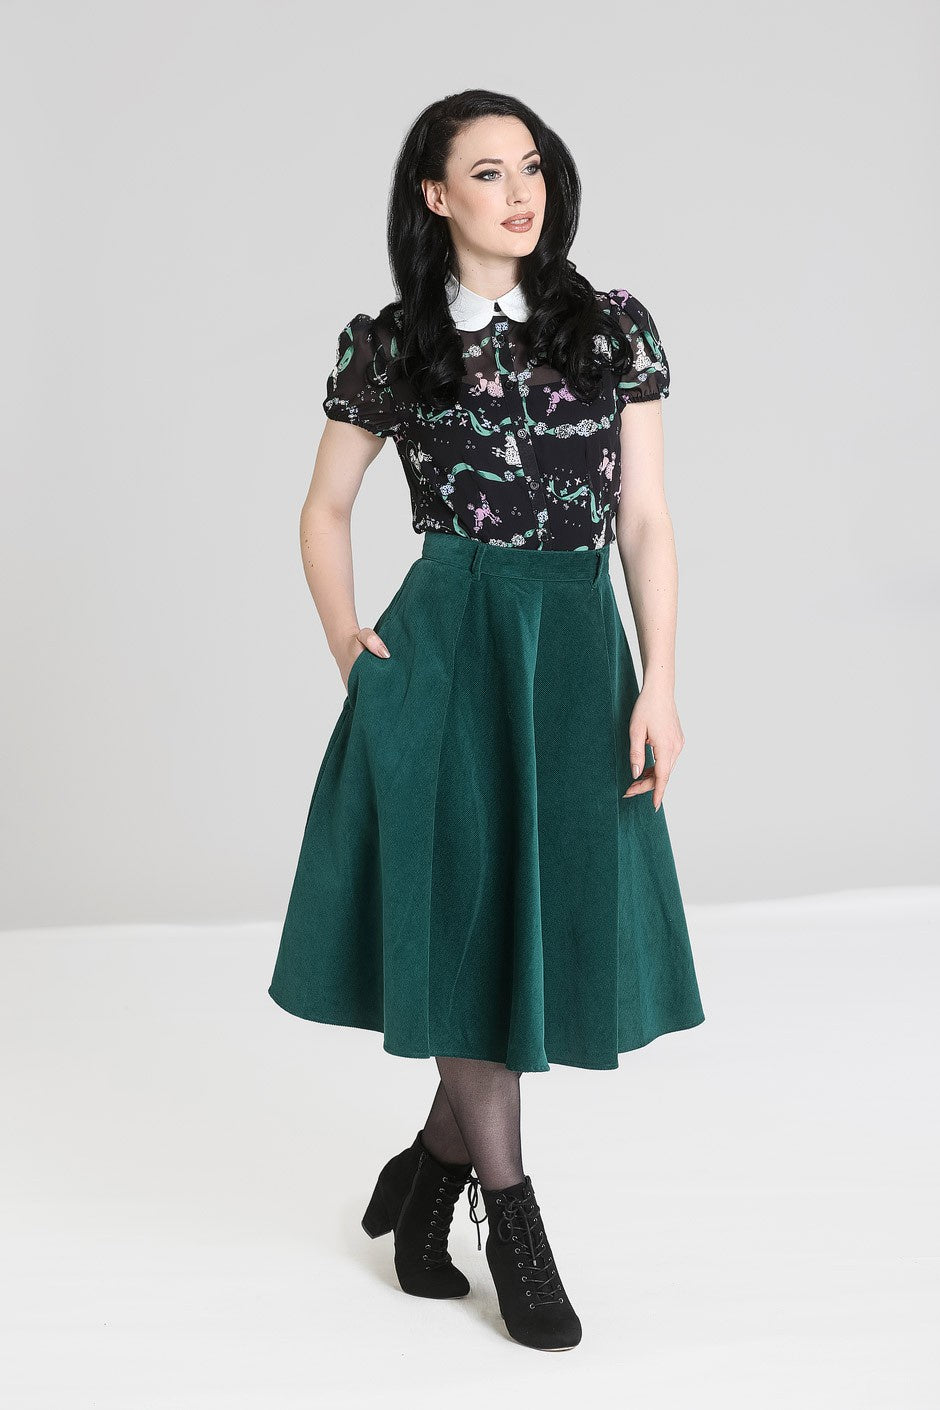 Jefferson Skirt - Green - Bowler Vintage